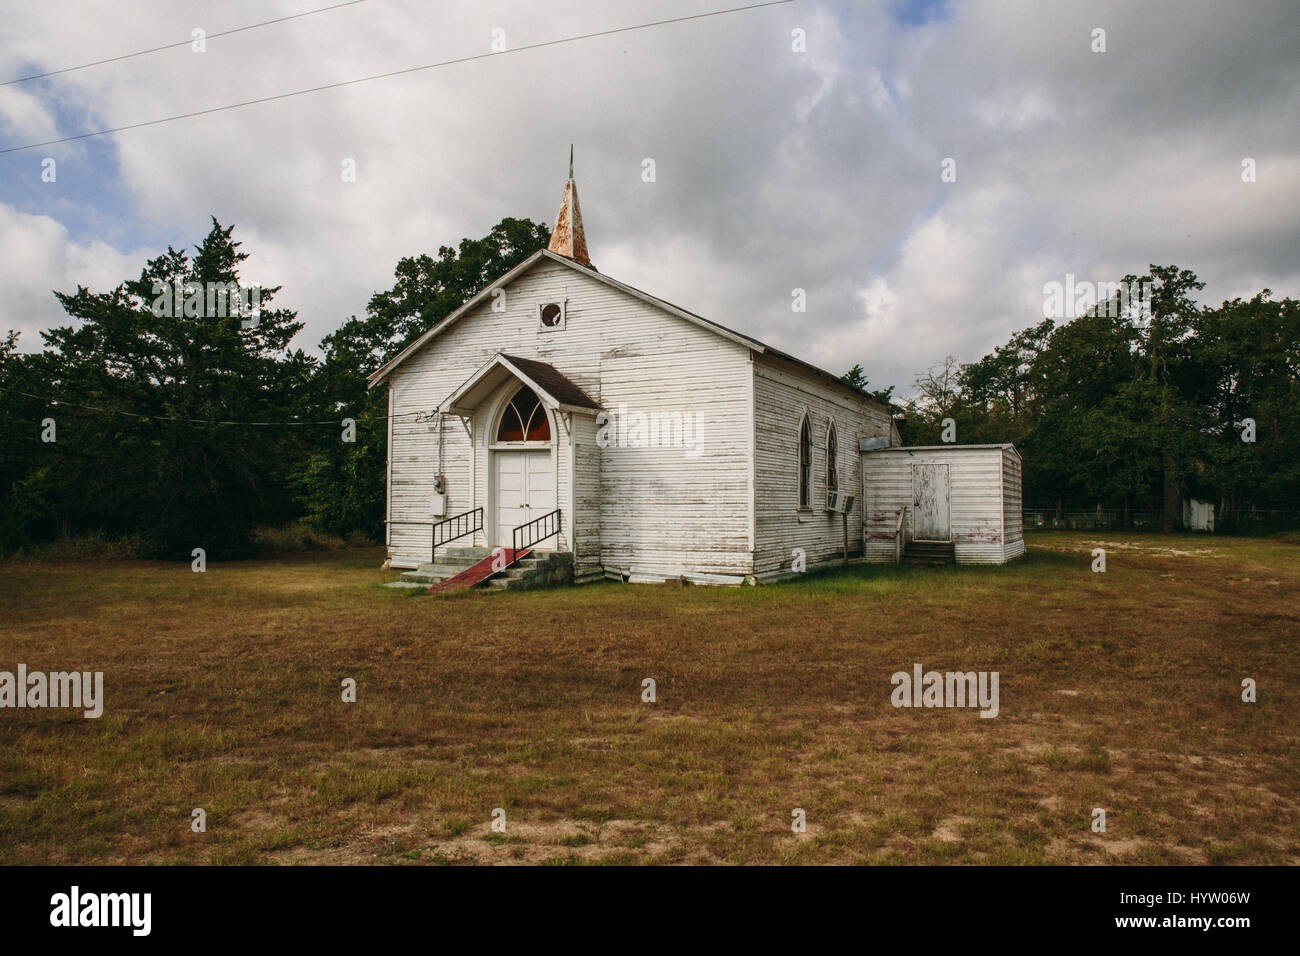 Decrepit Church in Texas, USA Stock Photo